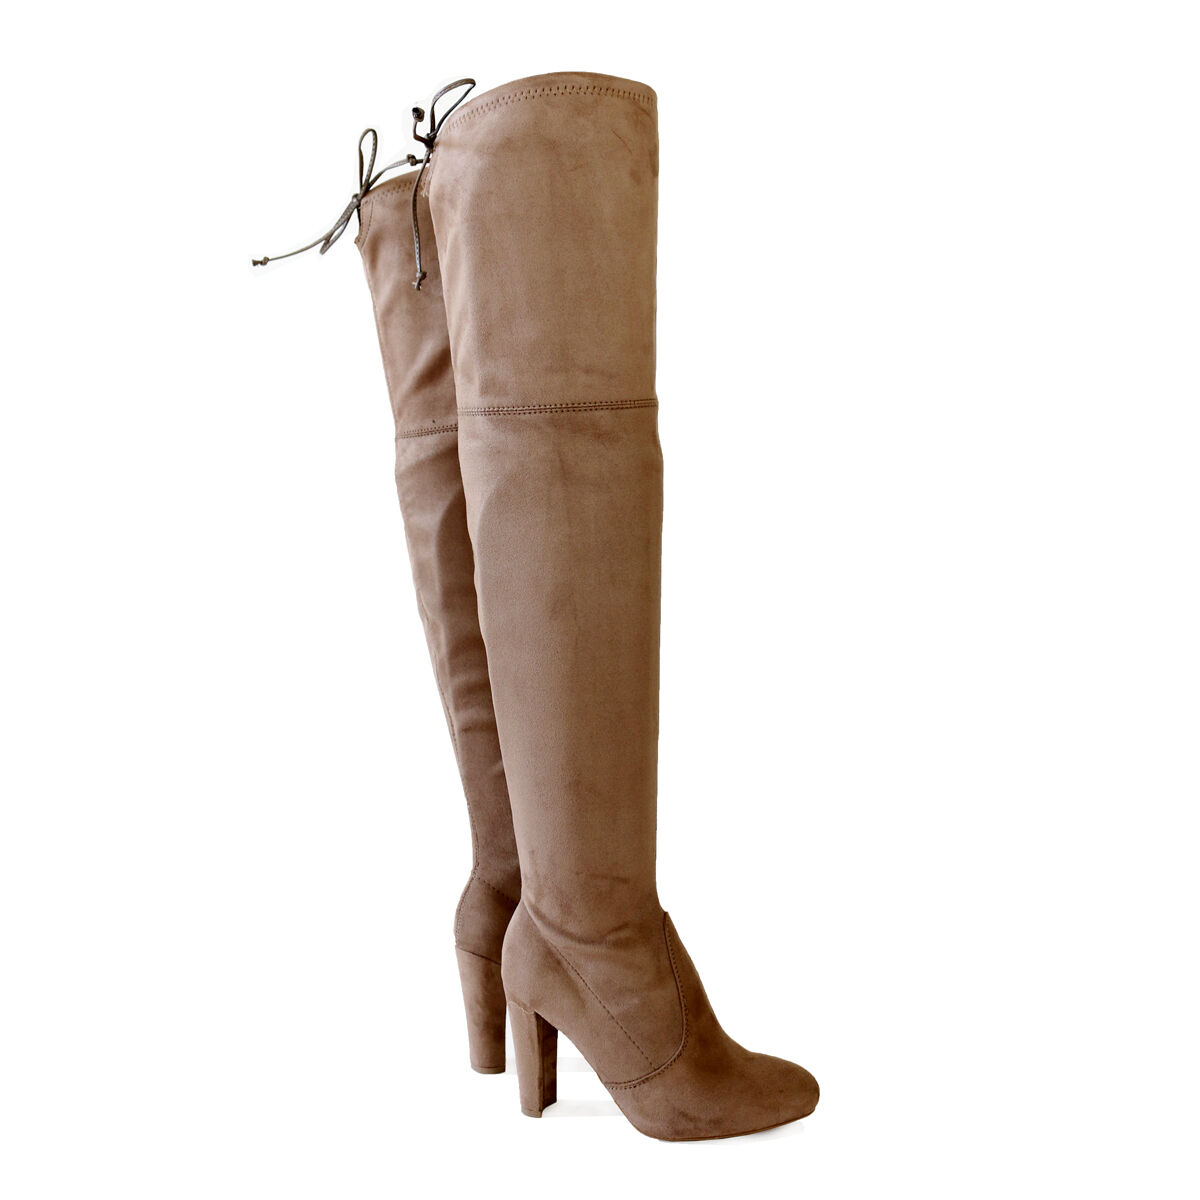 Stretch Suede  3.75 in. Covered Thick Heel  Over The Knee Thigh-High Boots Taupe